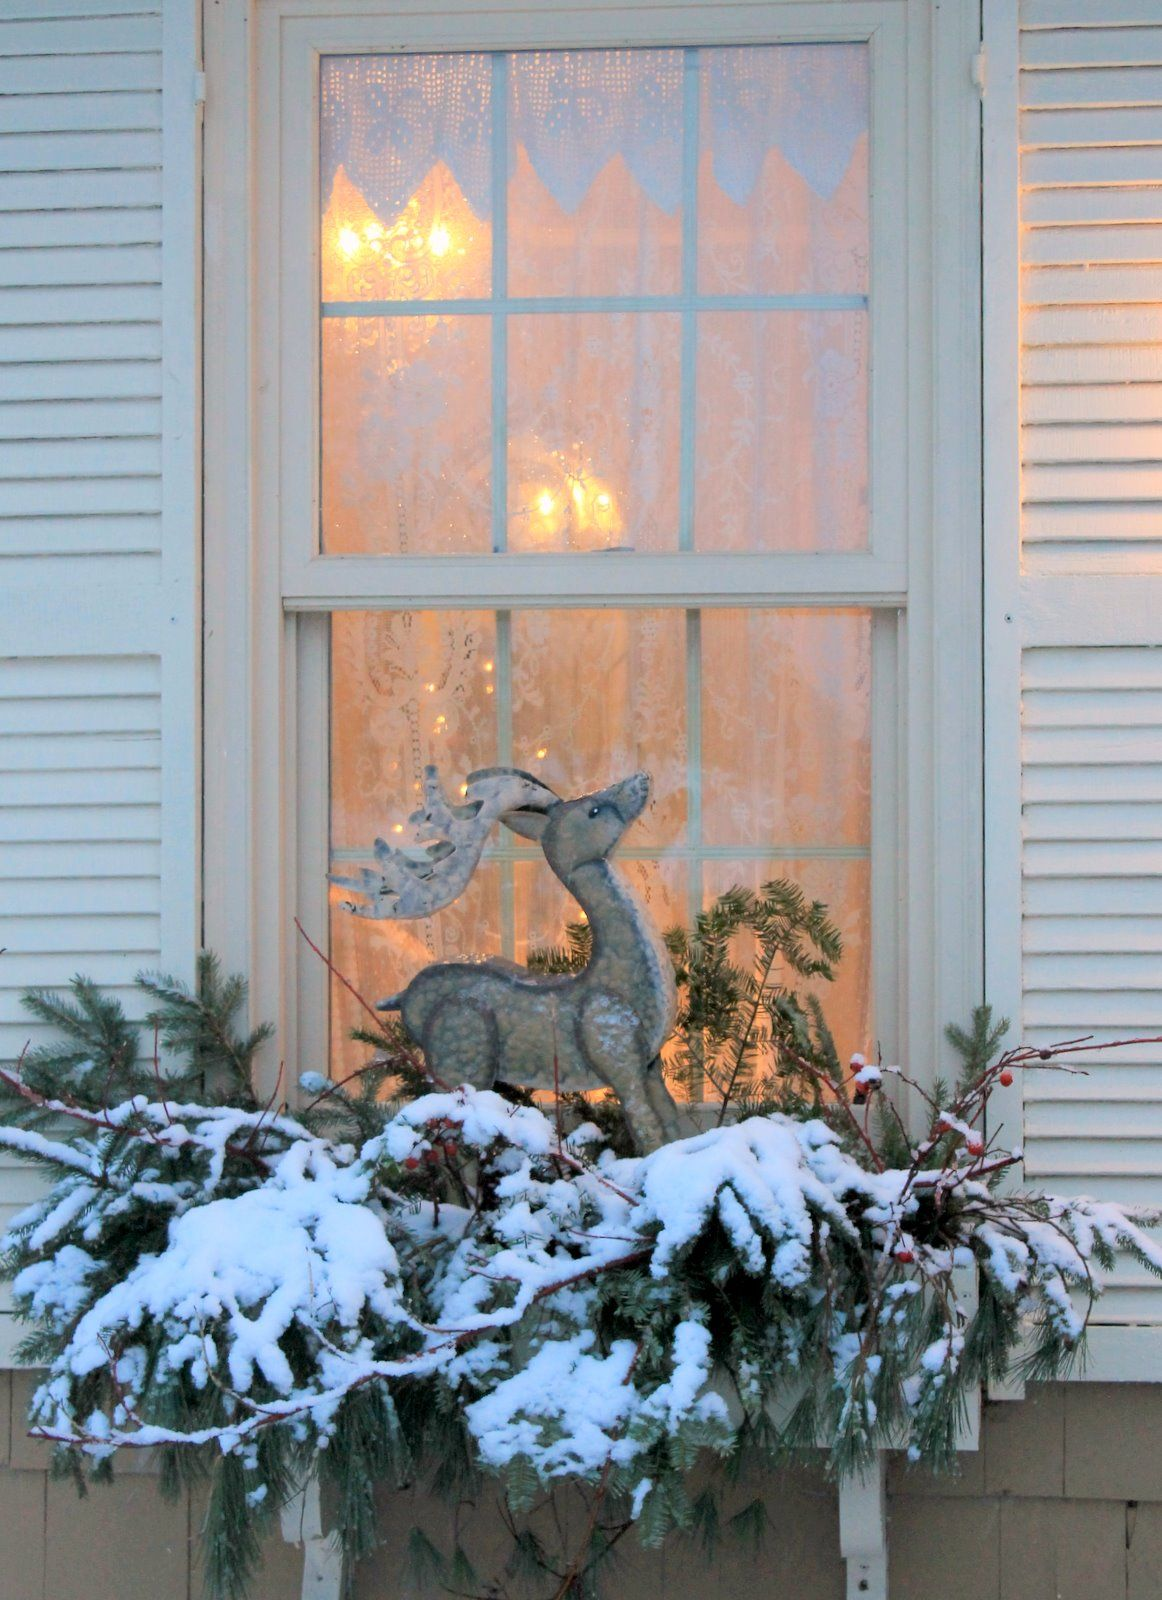 Window decor for christmas  reindeer in window box  christmas decor  pinterest  window box